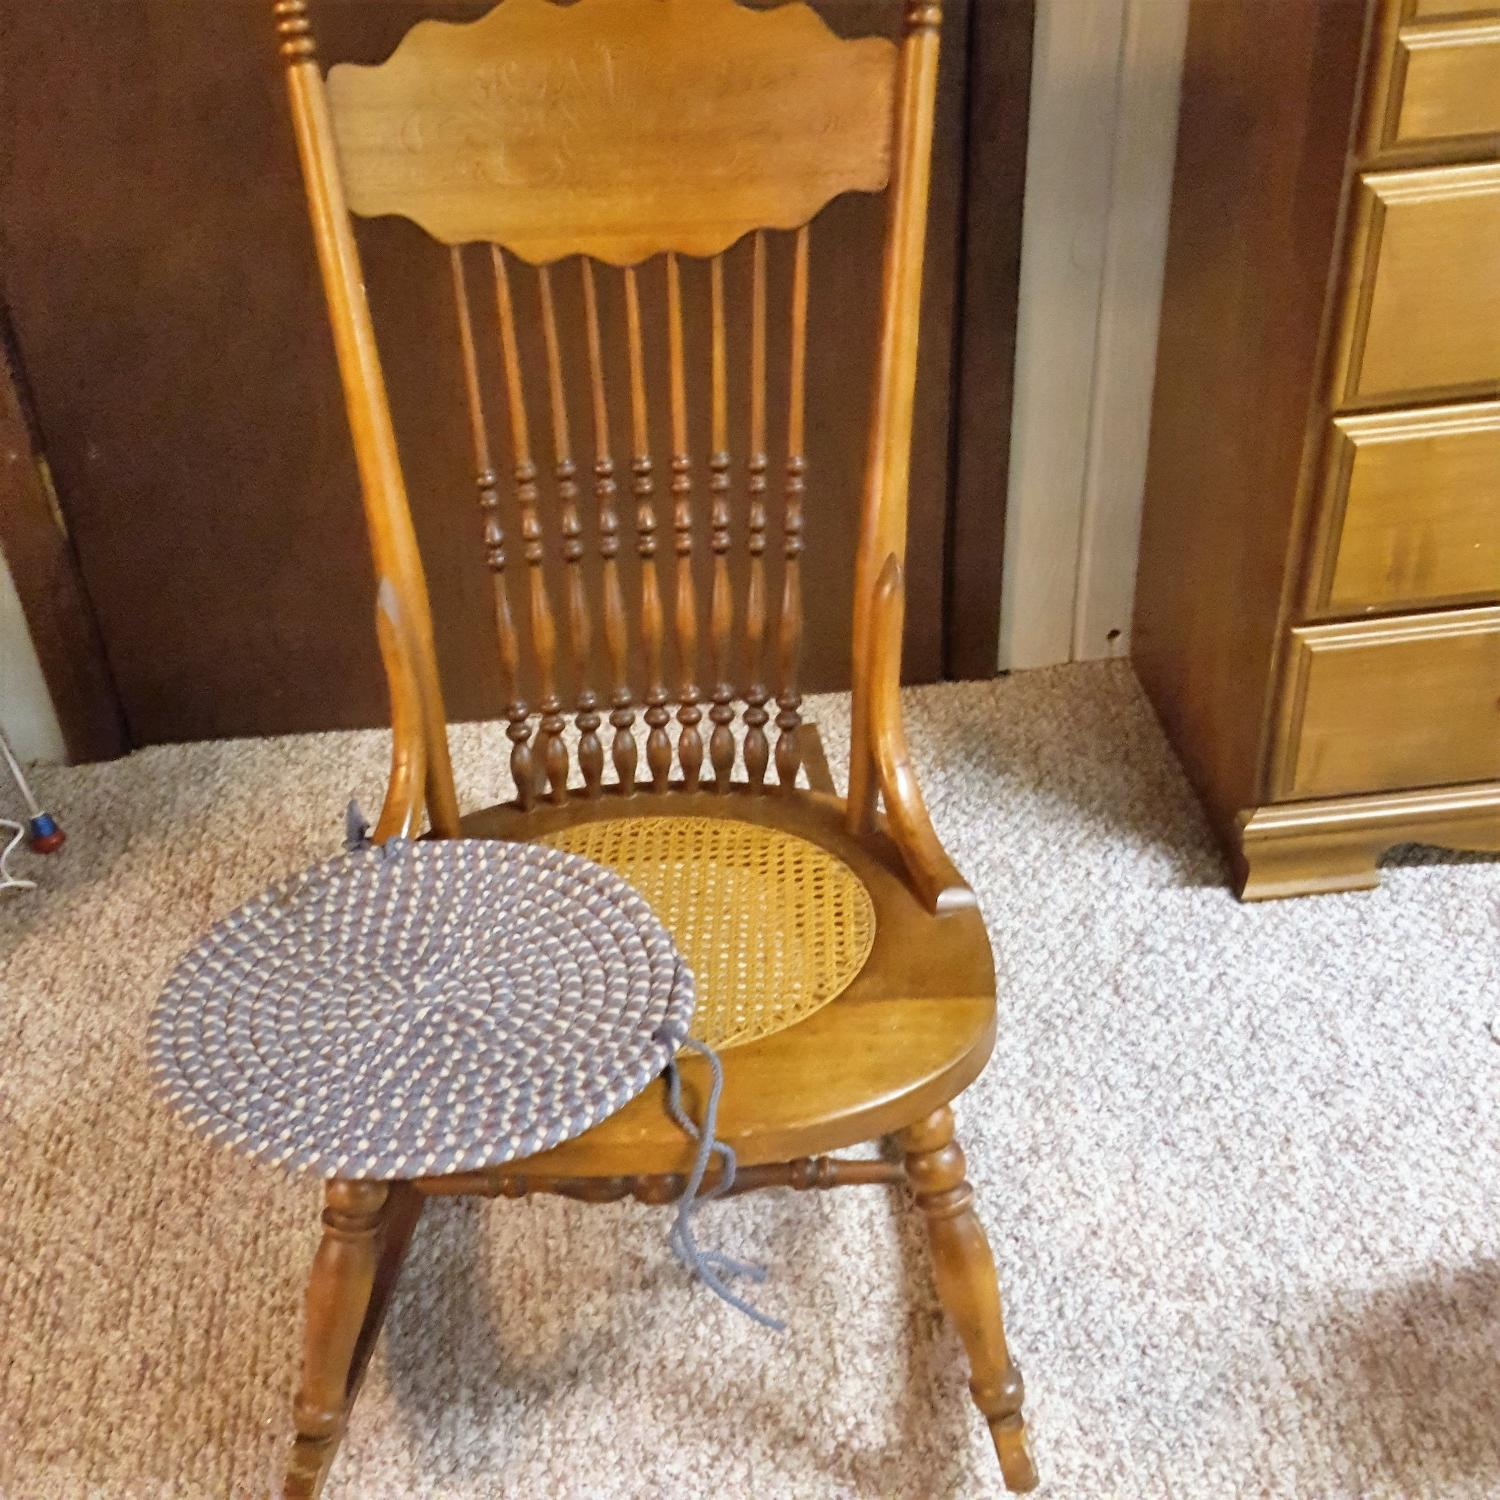 Best Antique Rocking Chair With Cane Seat for sale in Appleton ...